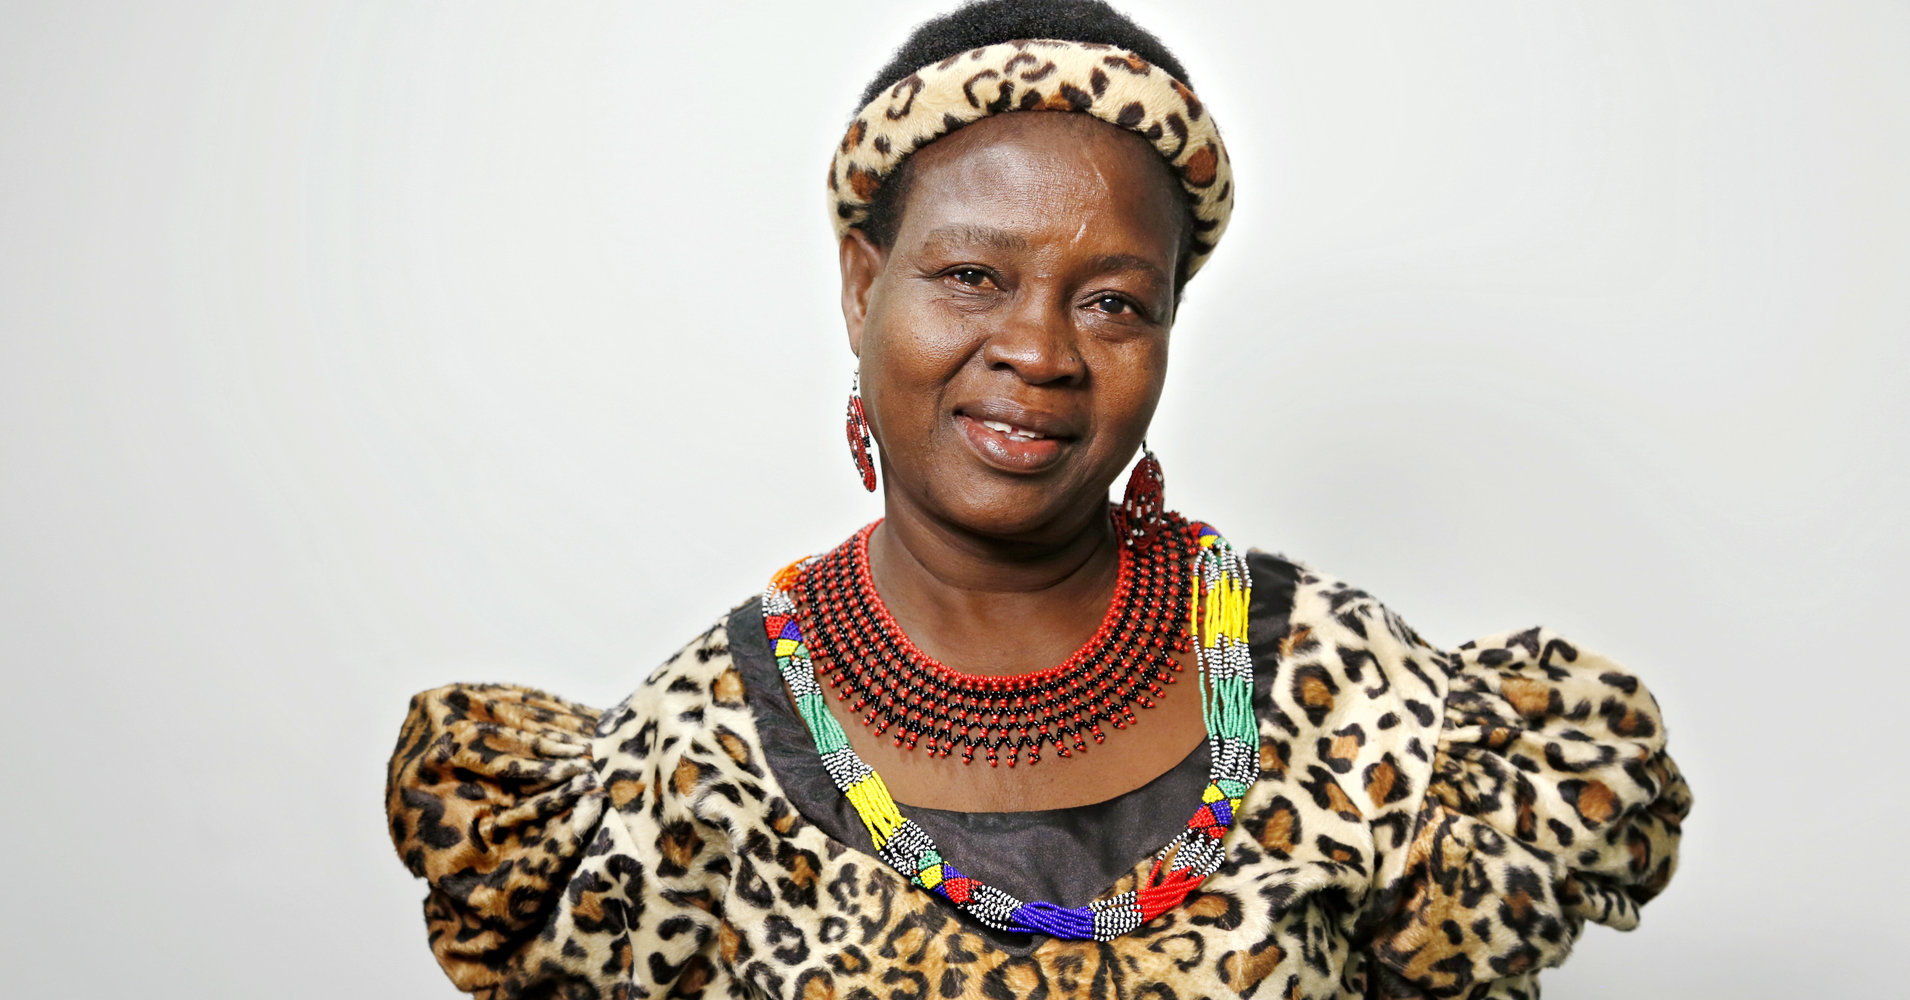 Chief Theresa Kachindamoto of Dedza District in Central Malawi